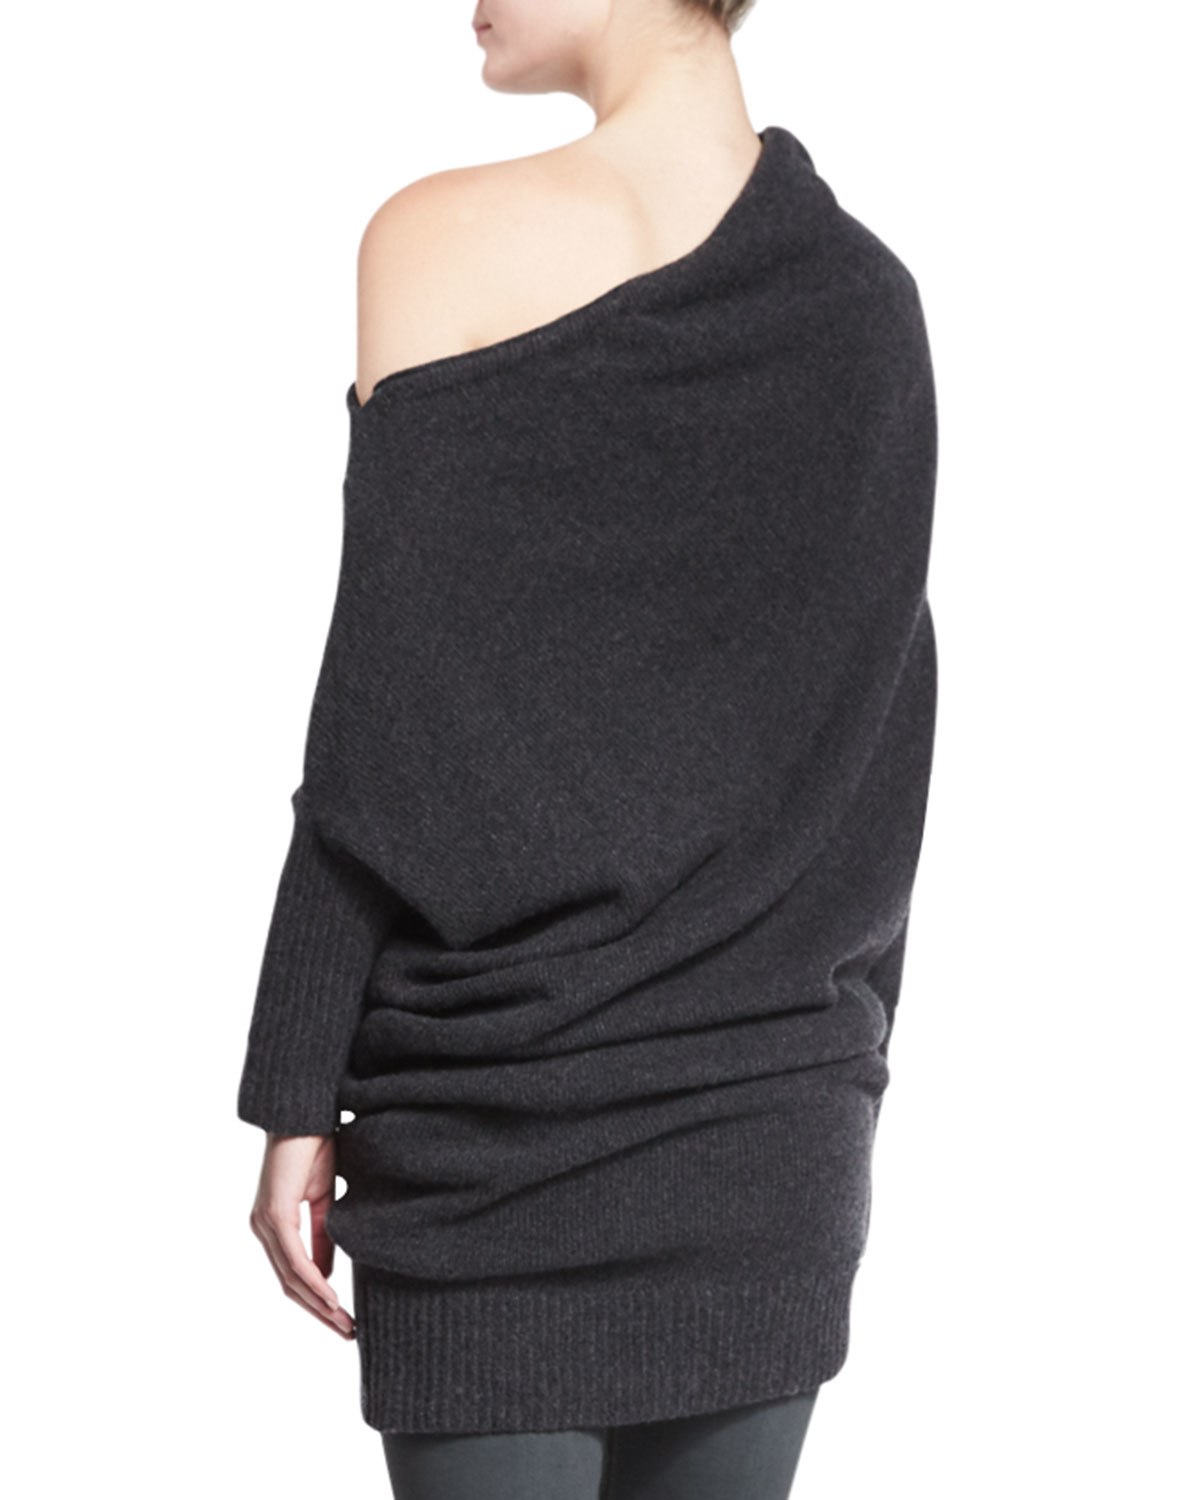 Donna karan Off-the-shoulder Cashmere Sweater in Black | Lyst